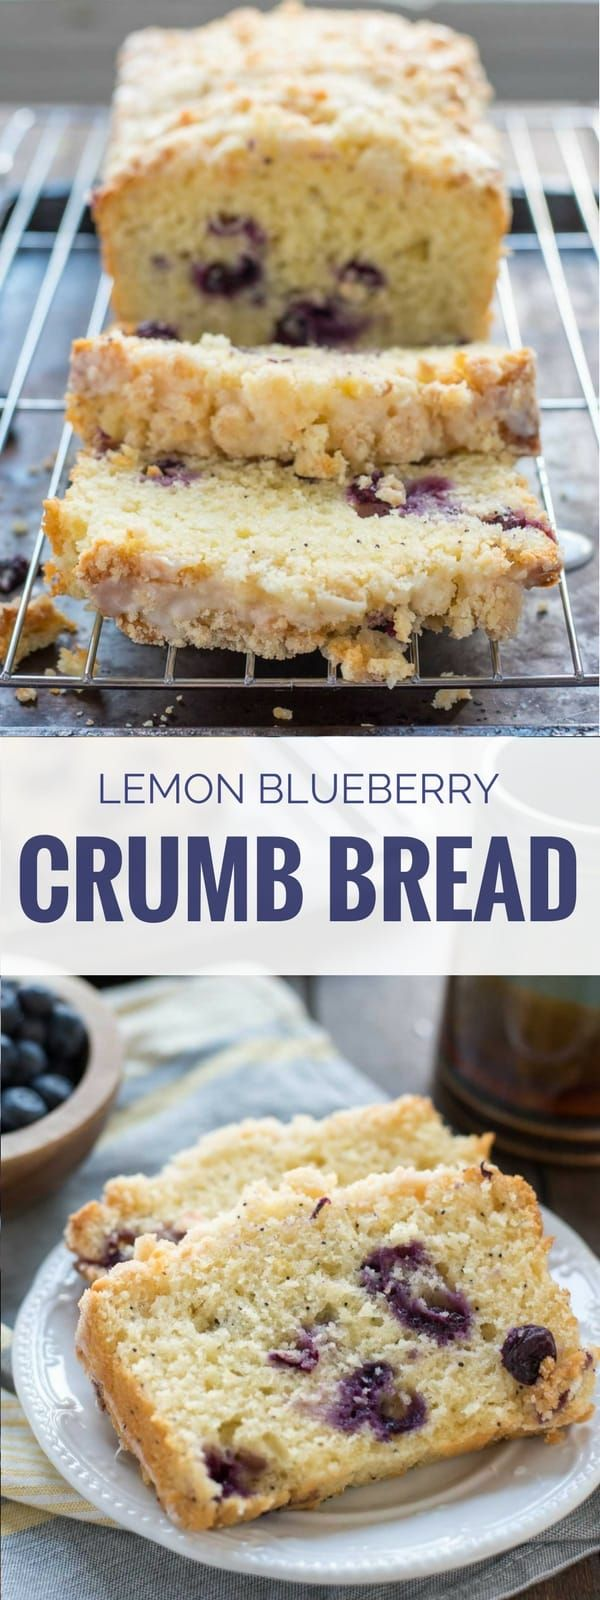 Lemon Blueberry Crumb Bread is sweet, tangy, bursting with blueberries and covered in a killer sugar crumb topping!